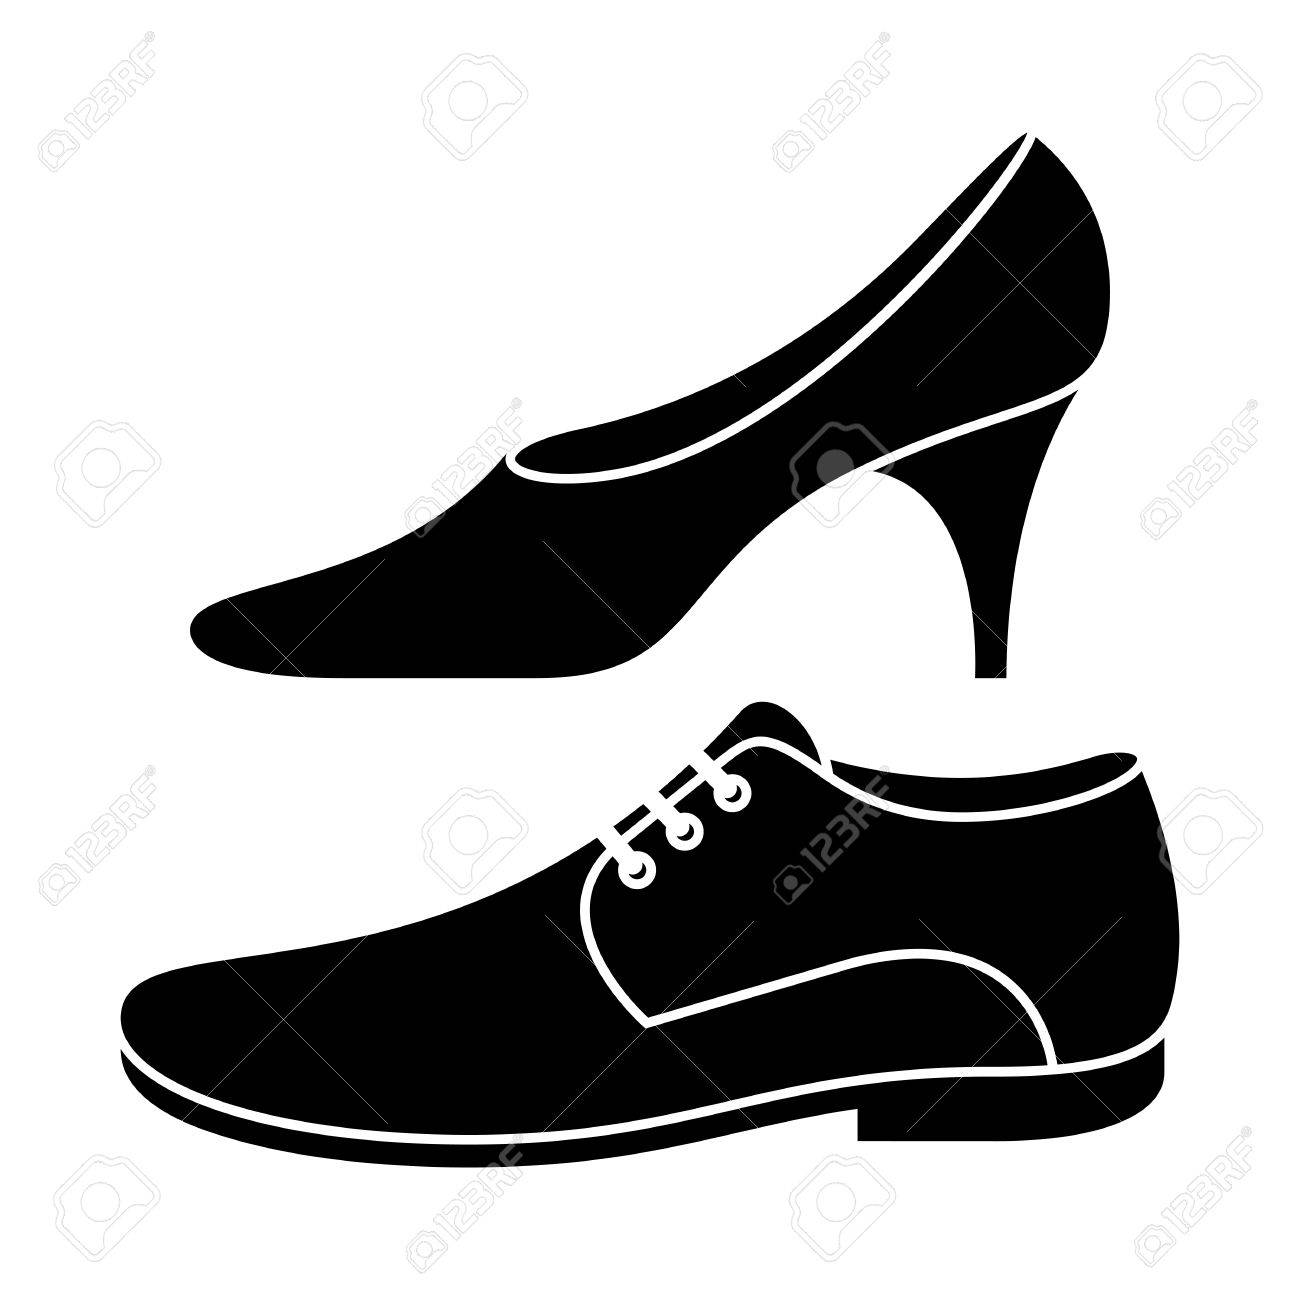 1ee05804ae0 Vector - Women and men shoe i - Women Shoes Clipart